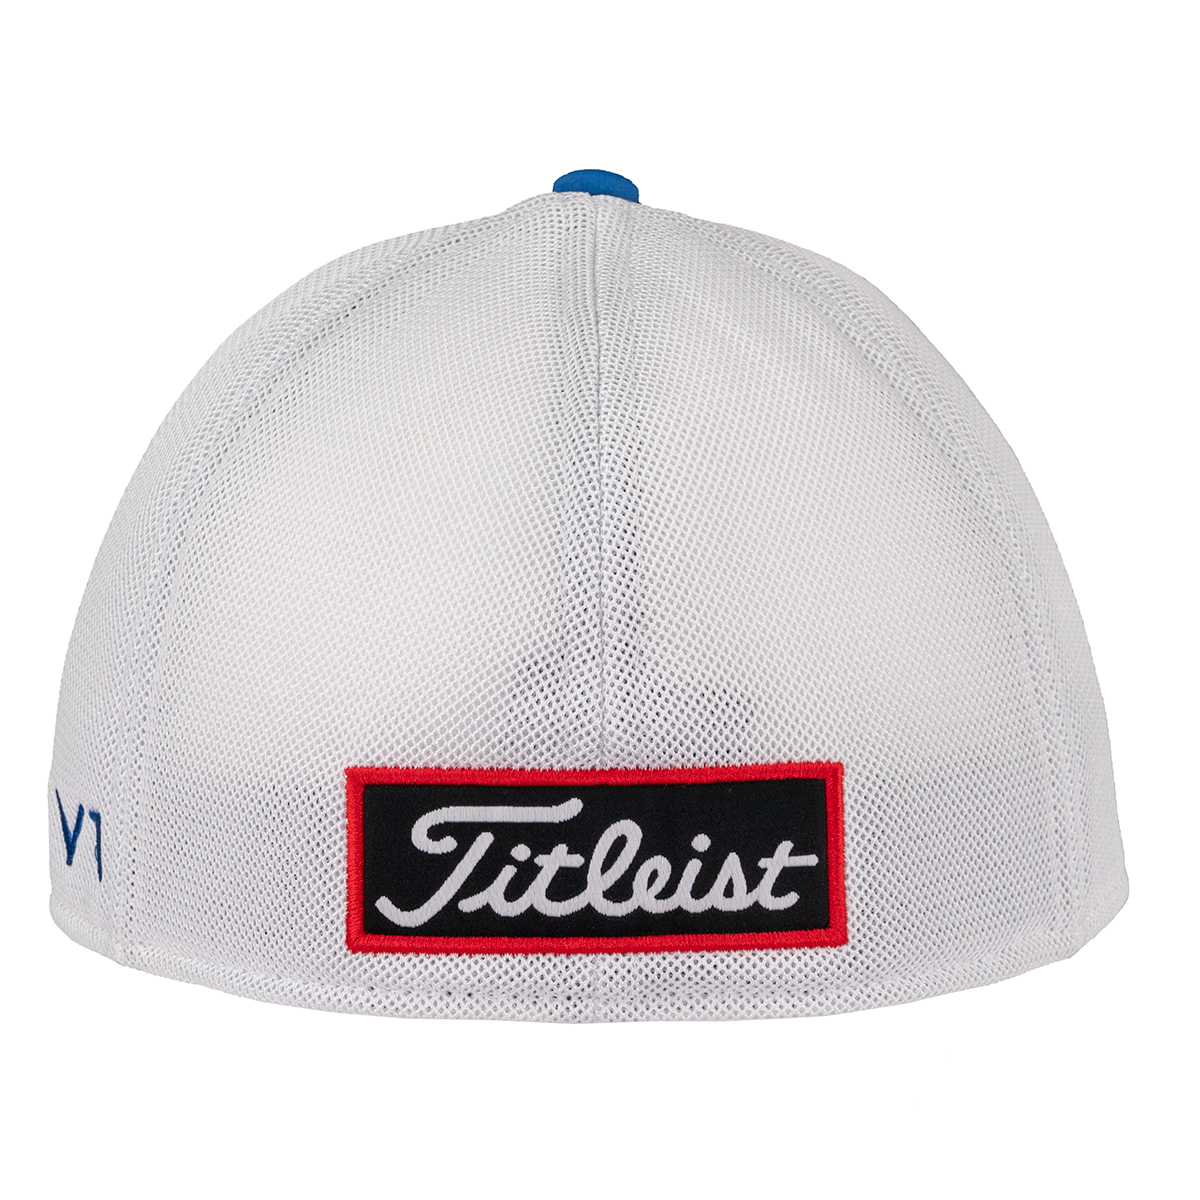 fe743977ed4 Titleist Men s Tour Sports Two-Tone Mesh Hat - Walmart.com